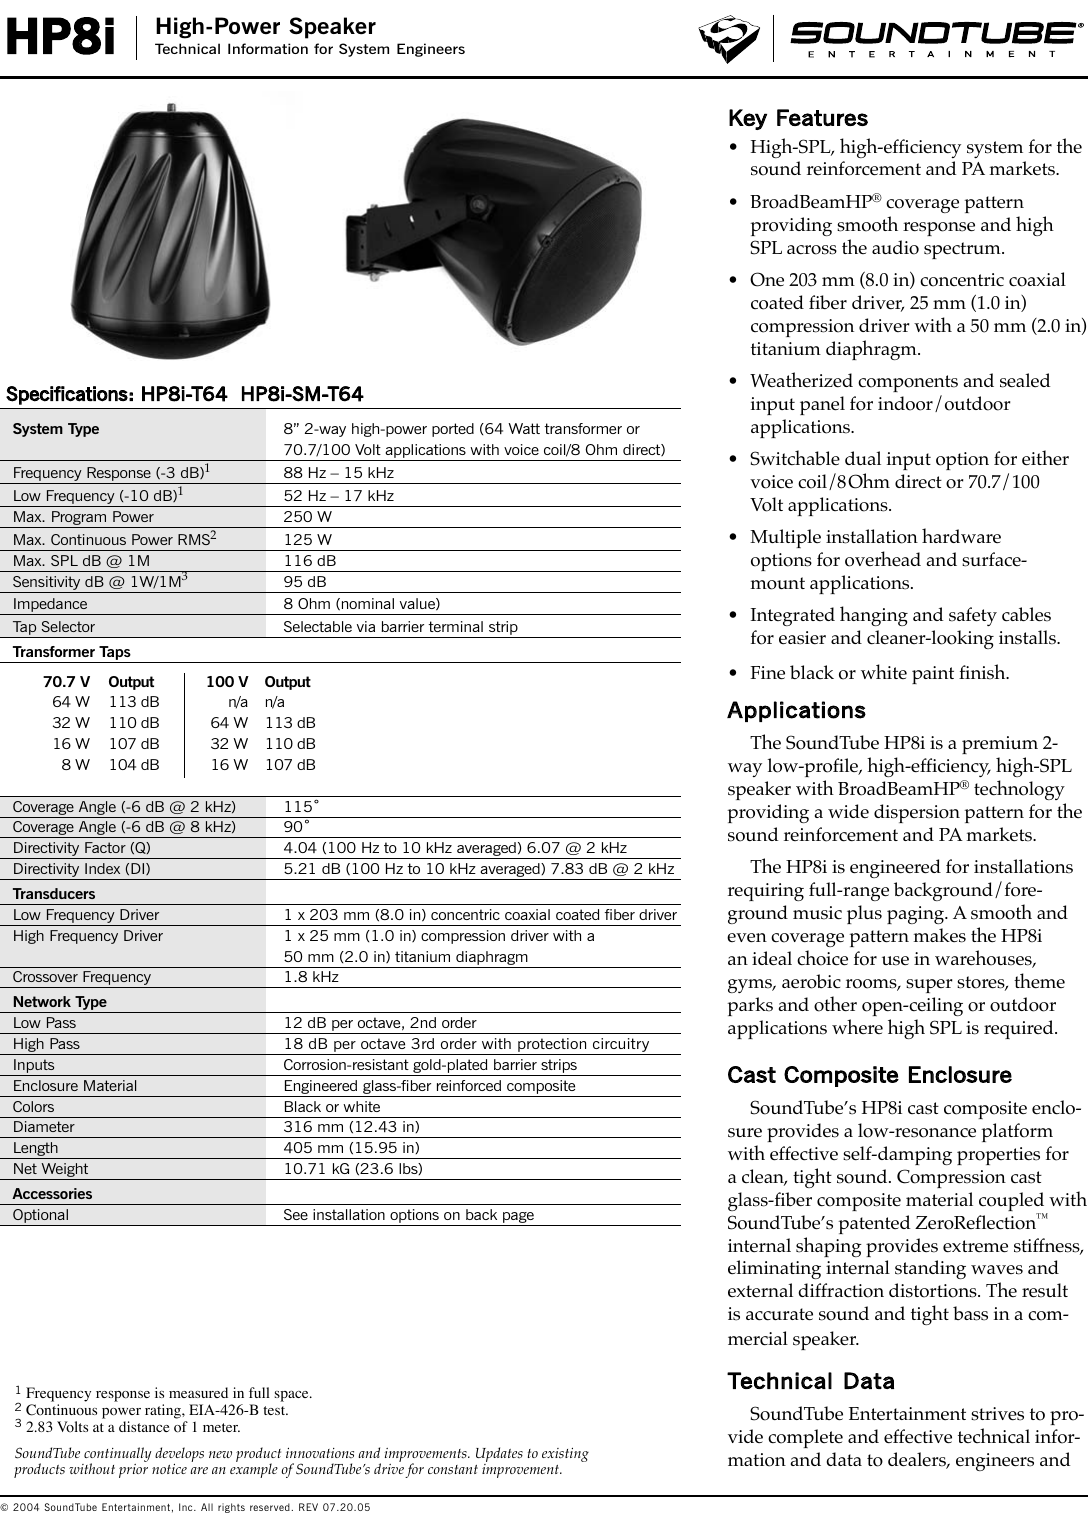 Phase Technology High Power Speaker Hp8I Users Manual 04